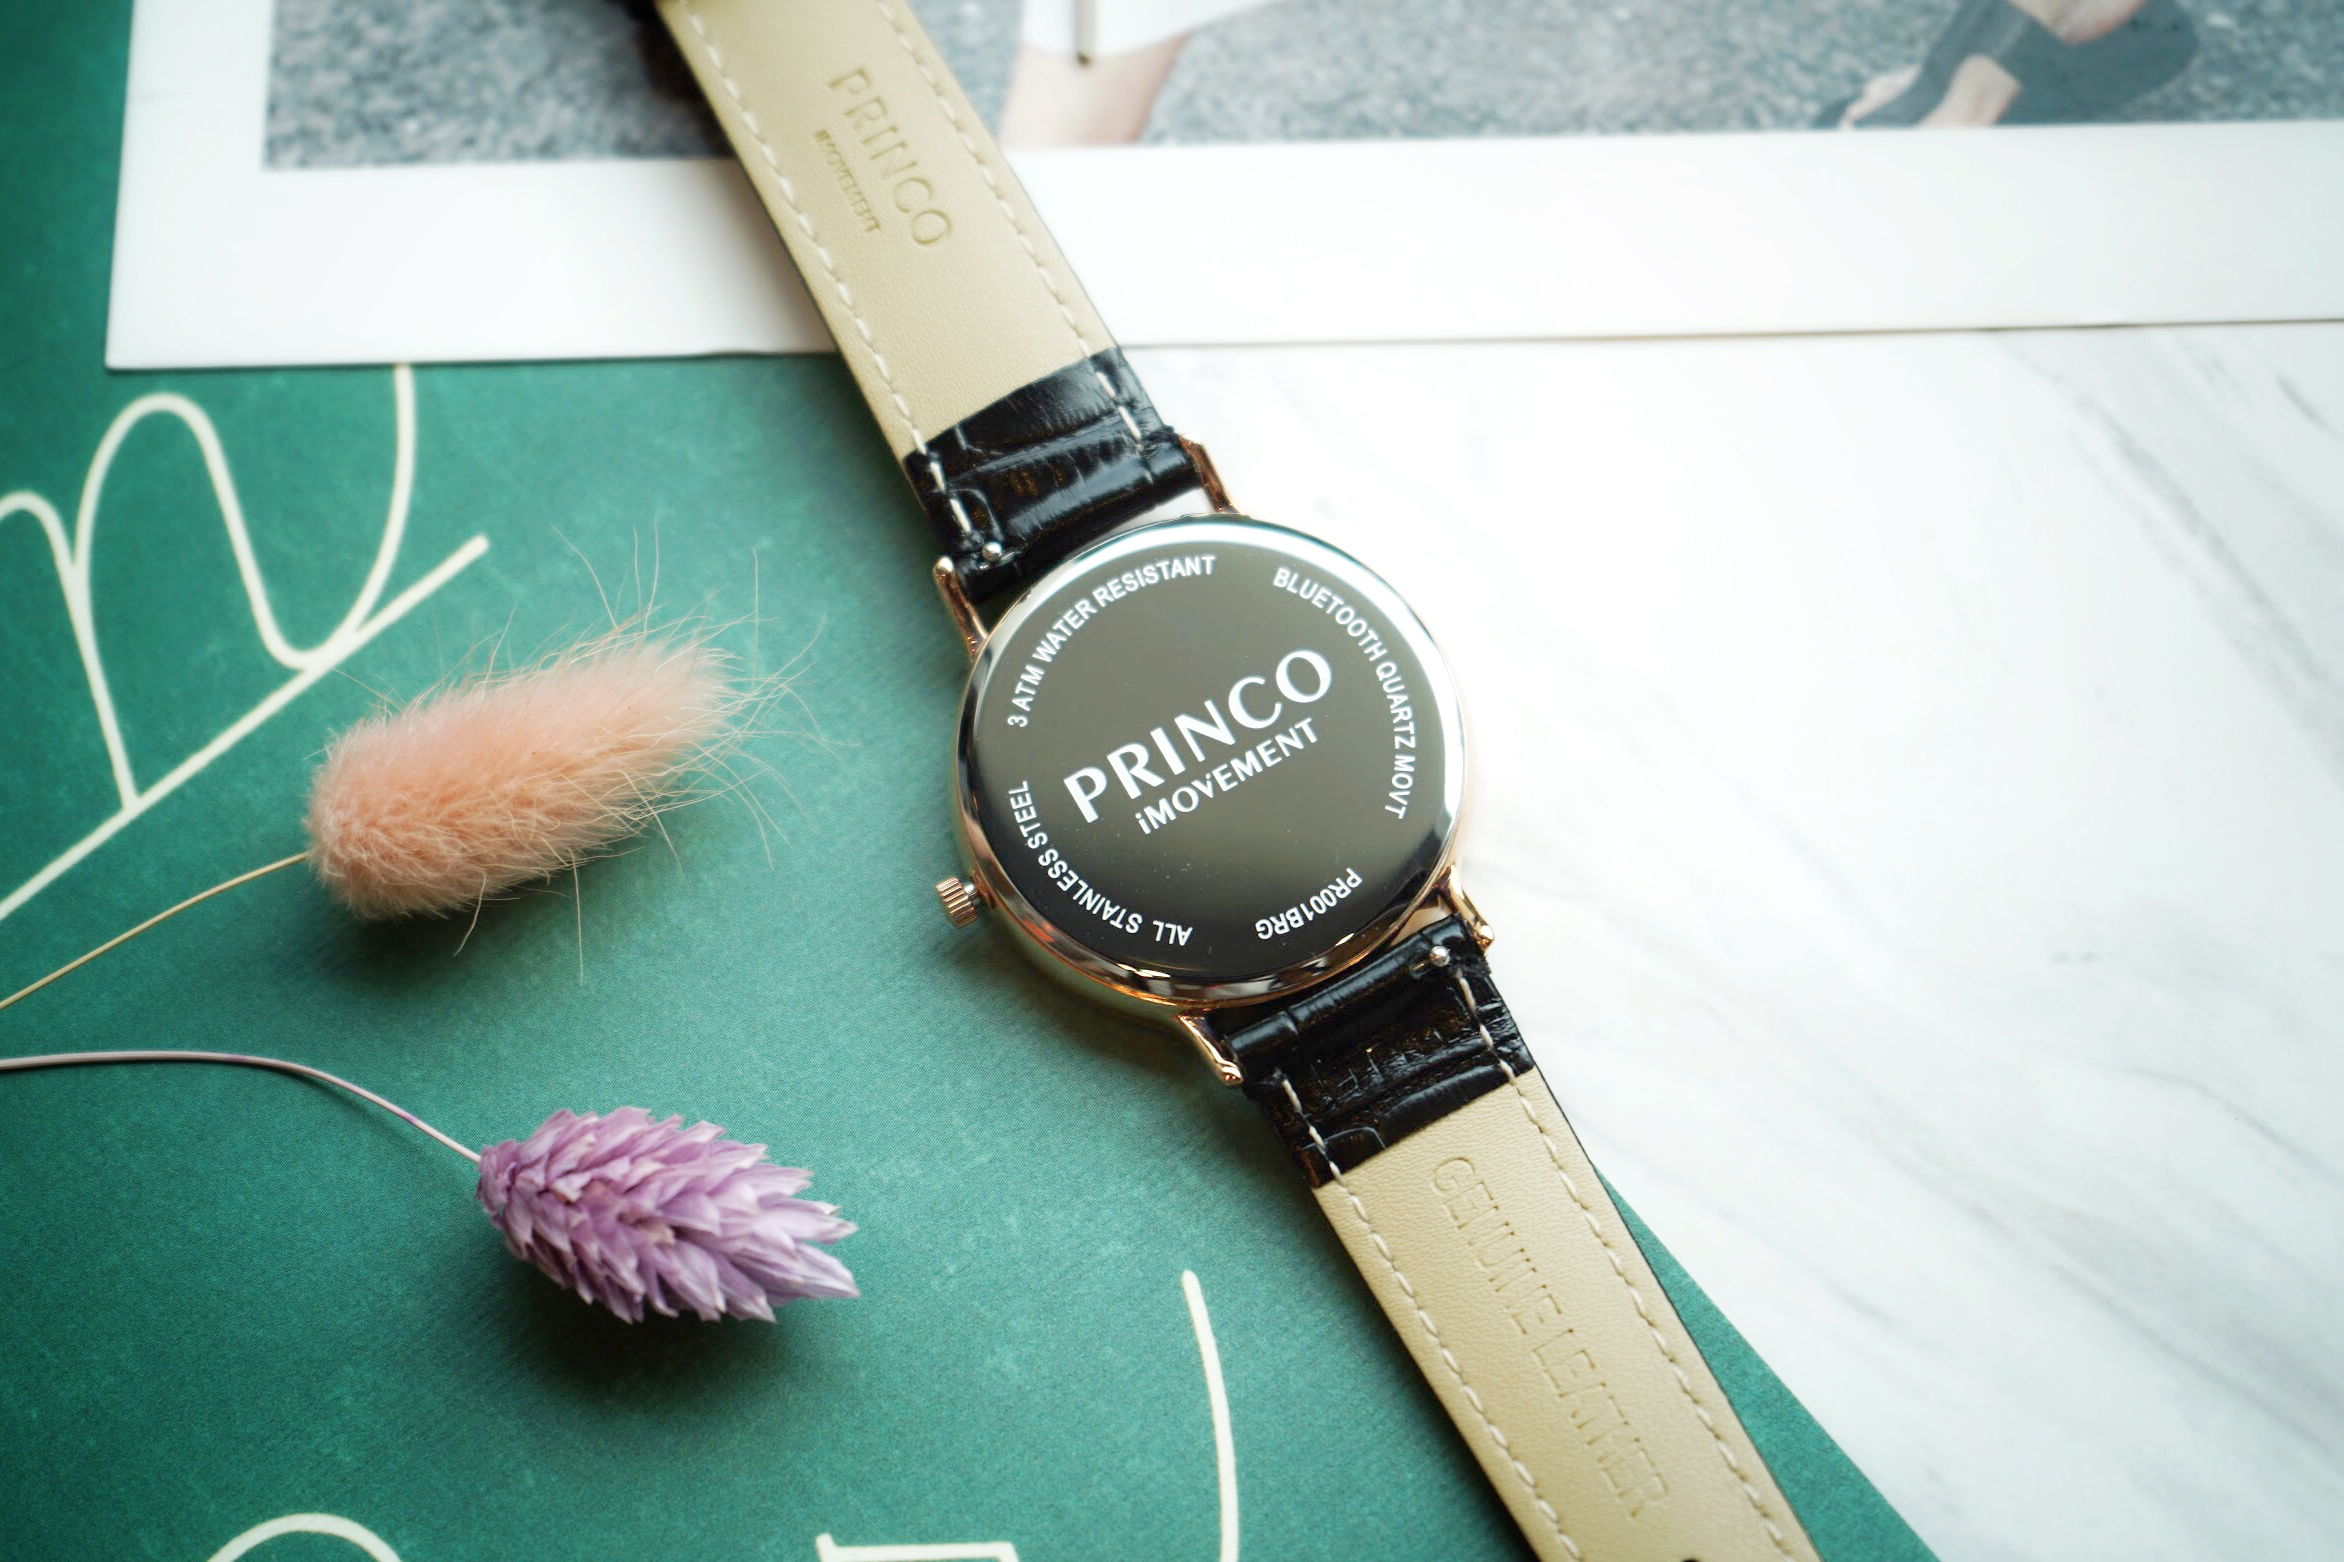 princo watch智慧手錶